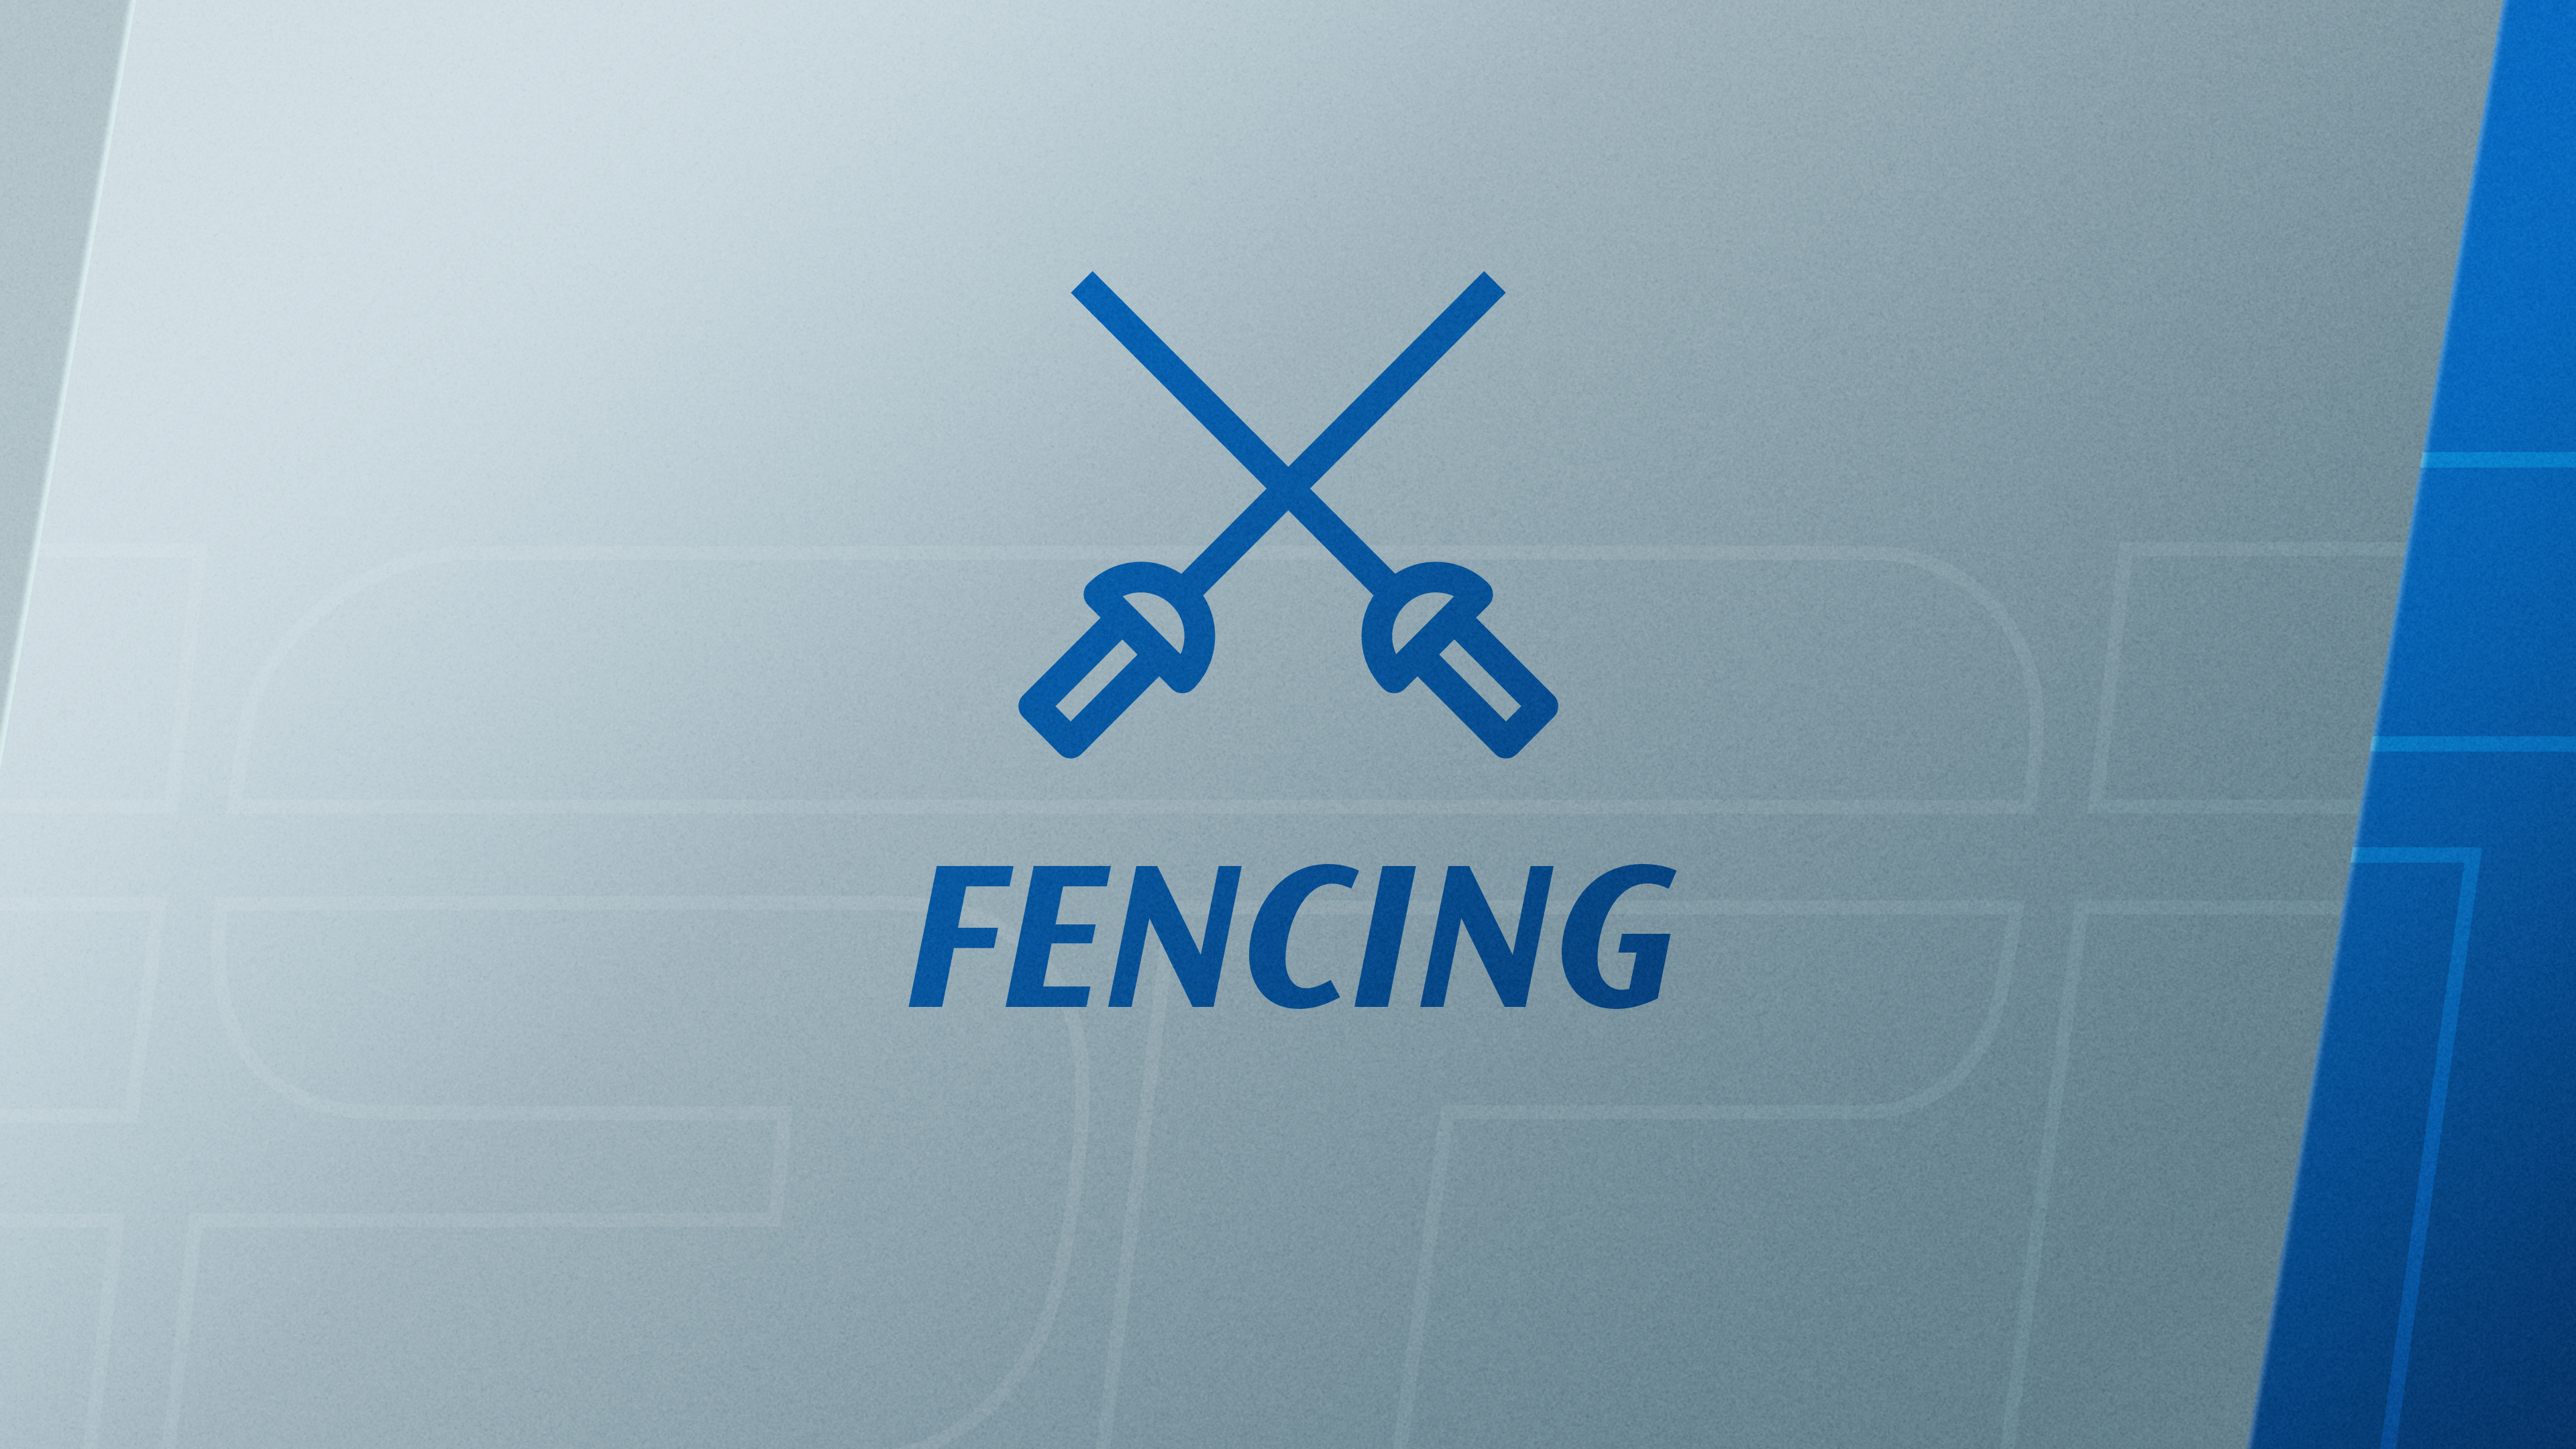 Men's and Women's Fencing Championship